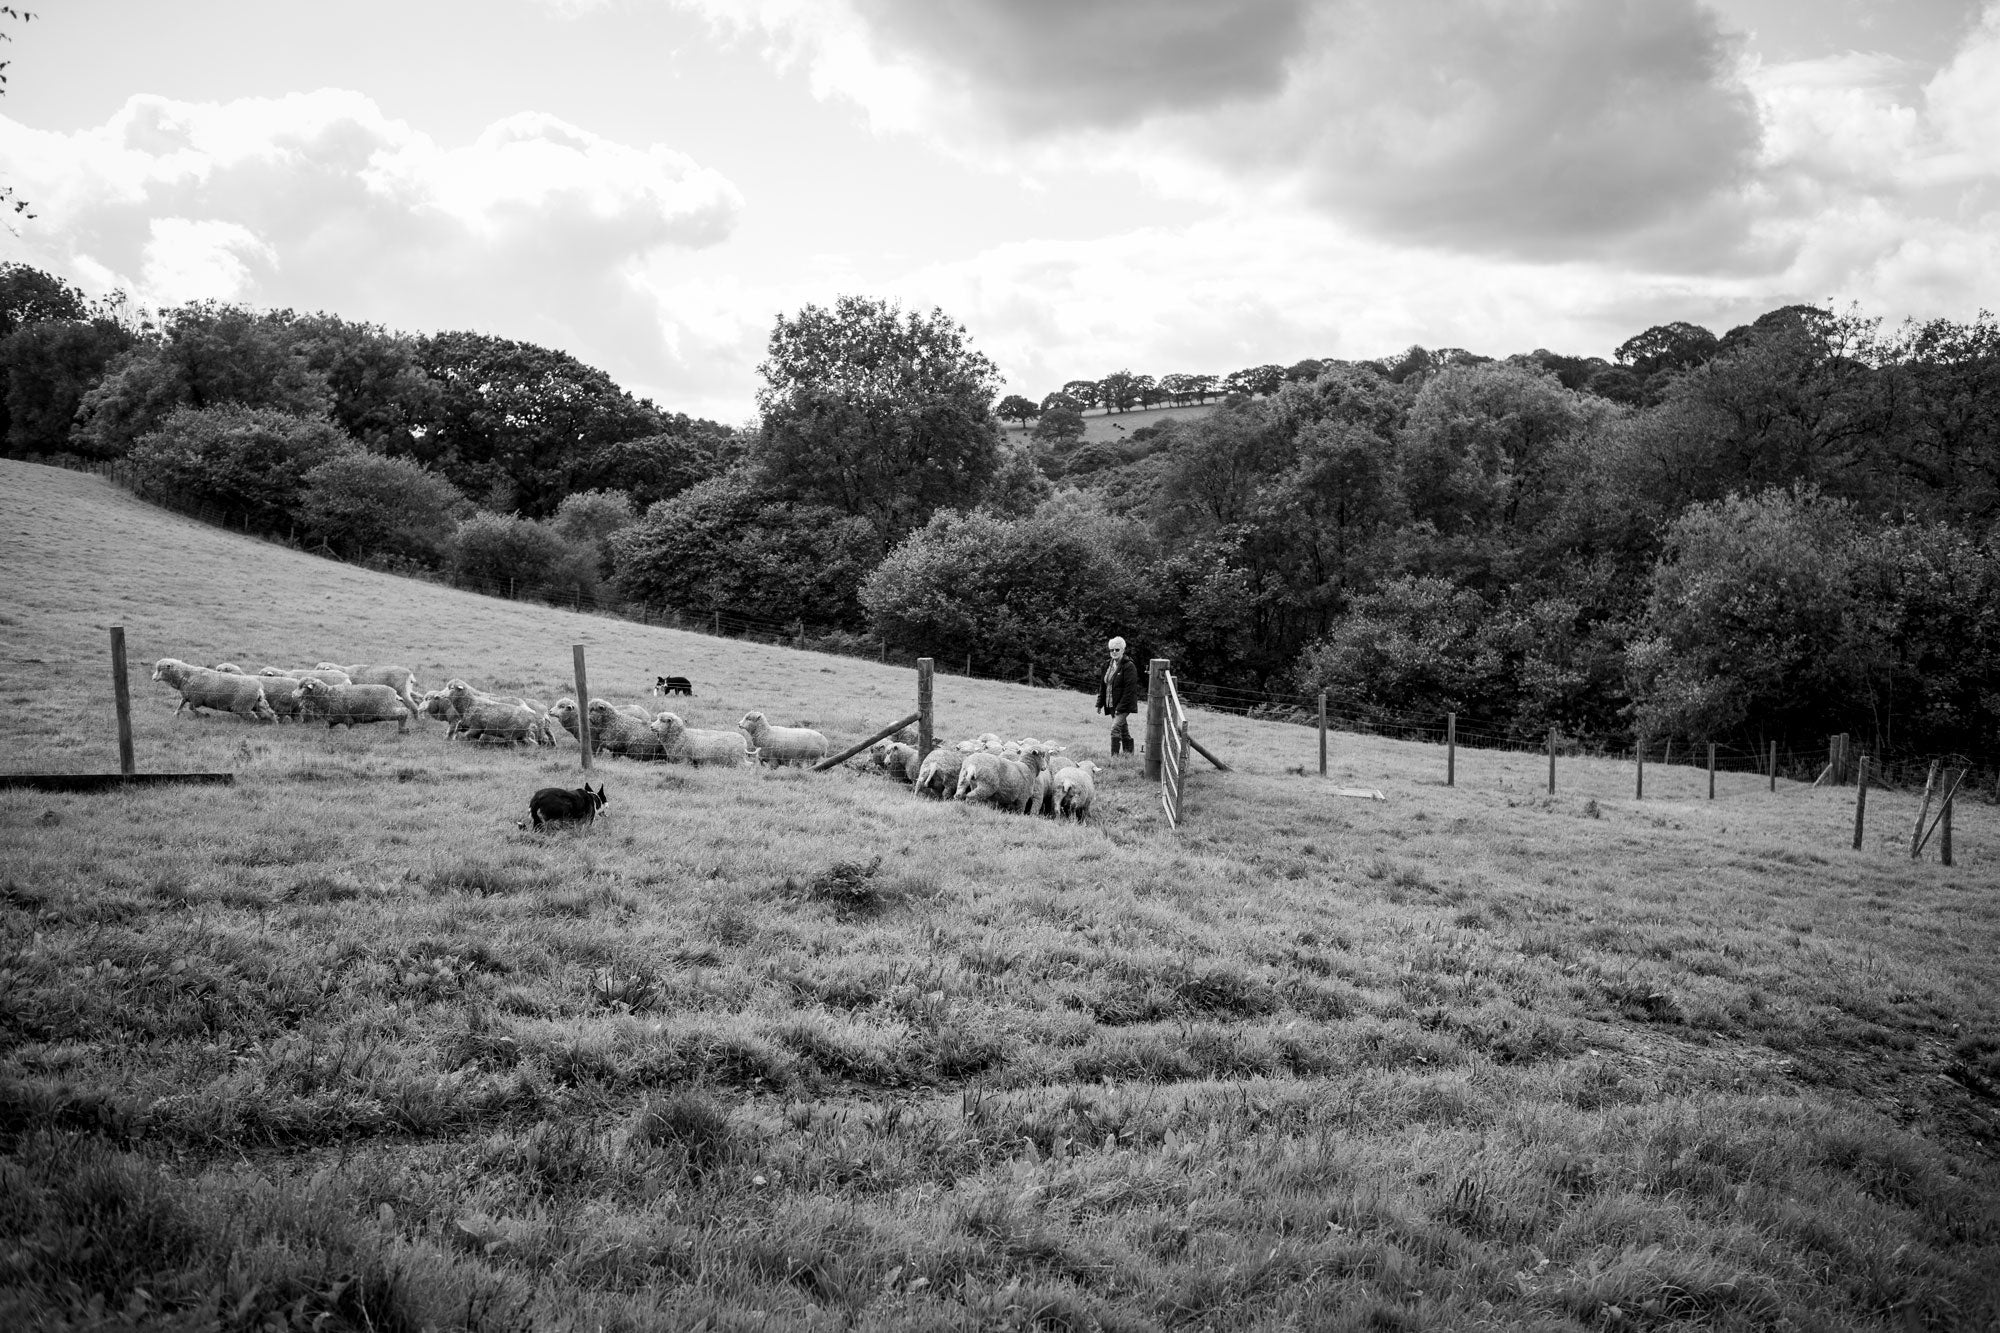 Finisterre-Bowmont-Project-Lesley-with-her-flock-in-the-field